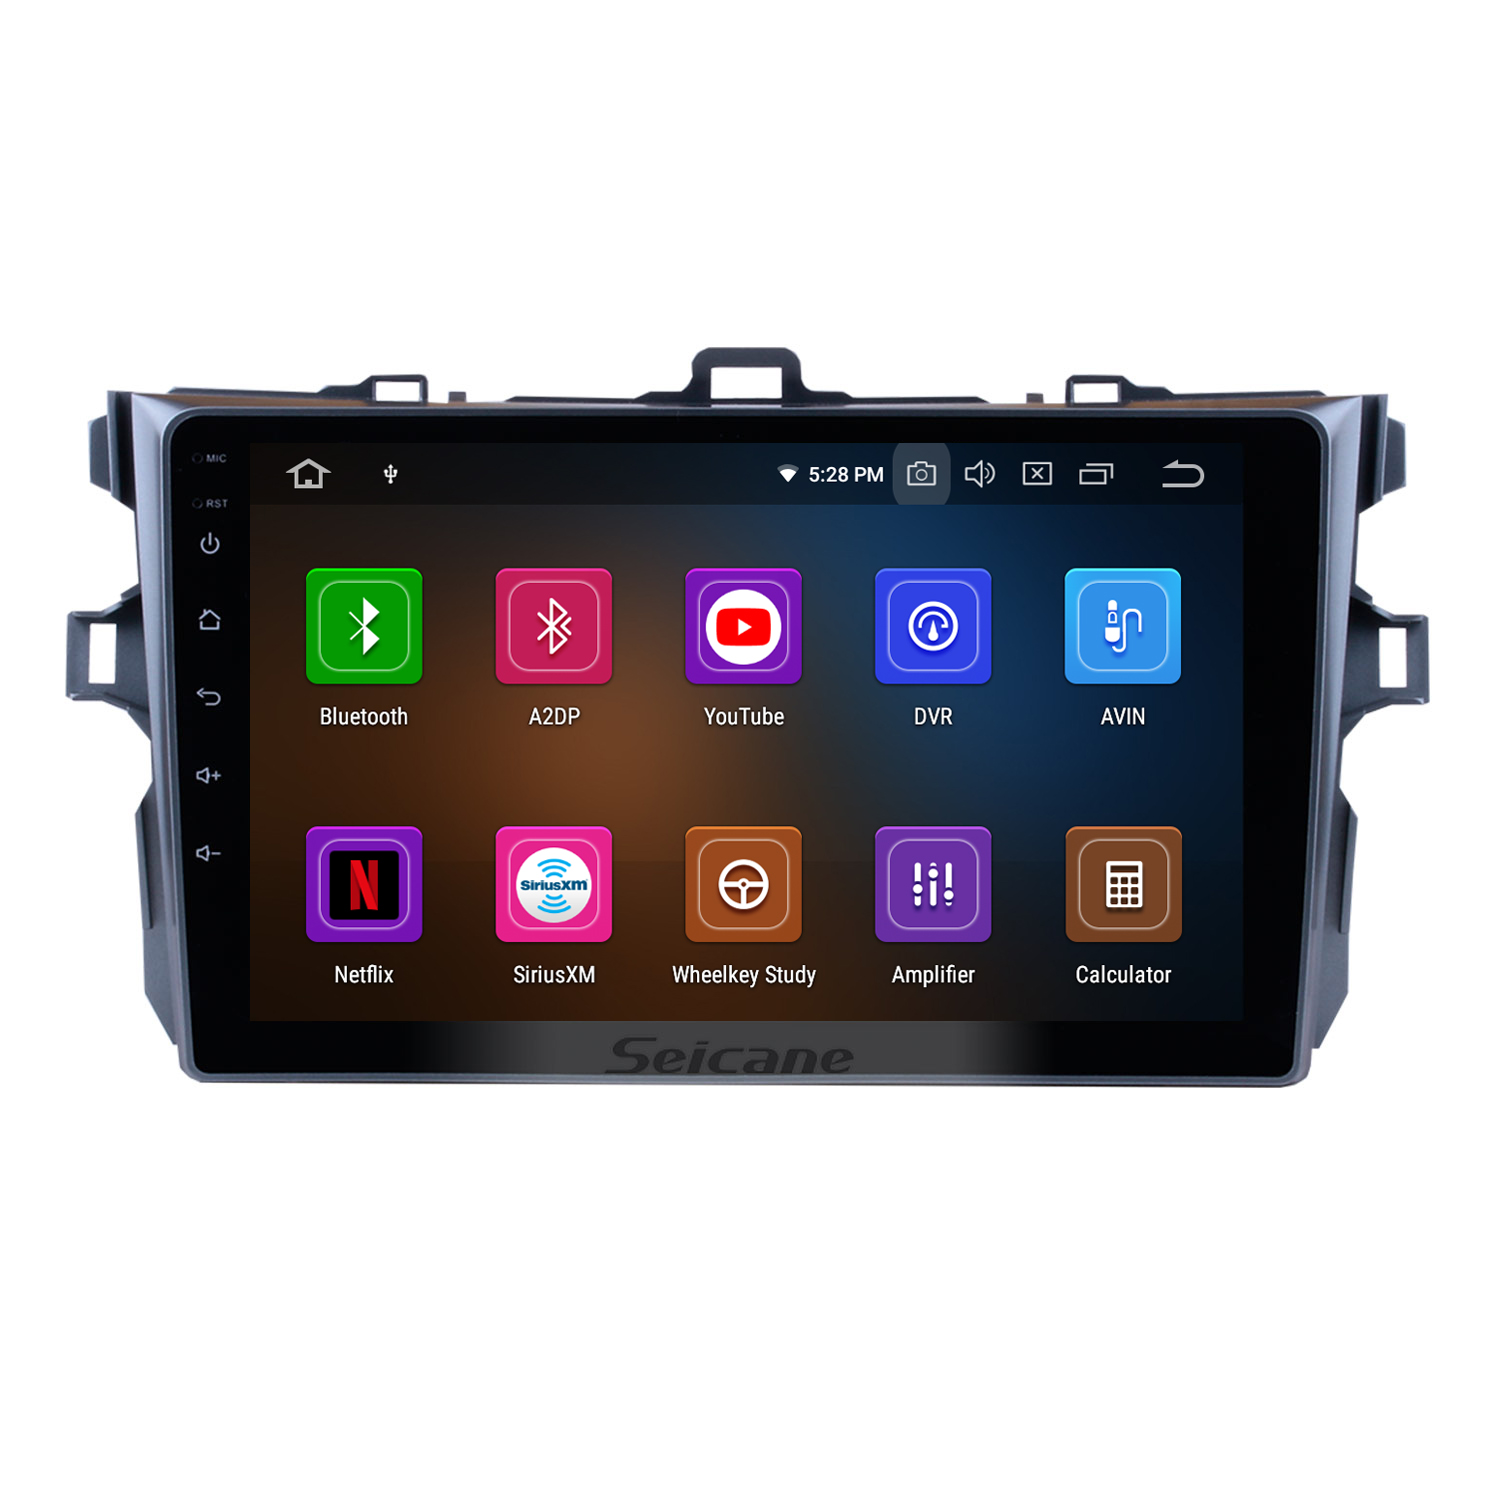 Seicane 9 inch Android 9 0 1Din Car Radio For Toyota COROLLA 2006 2007 2008 2009